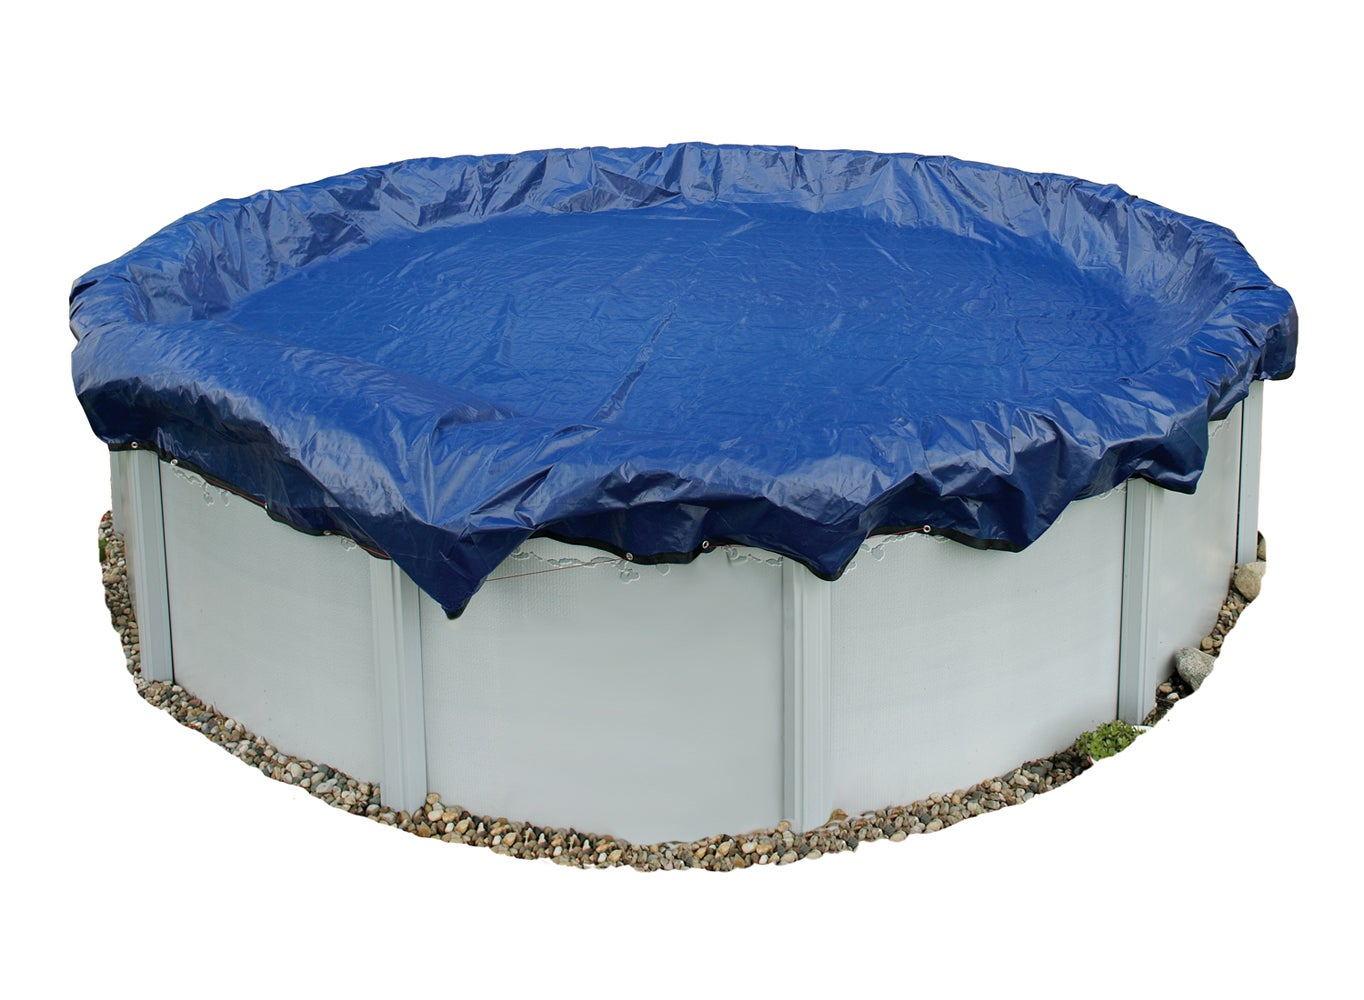 Dirt Defender Gold 15-Year 12-ft Round Above Ground Pool Winter Cover